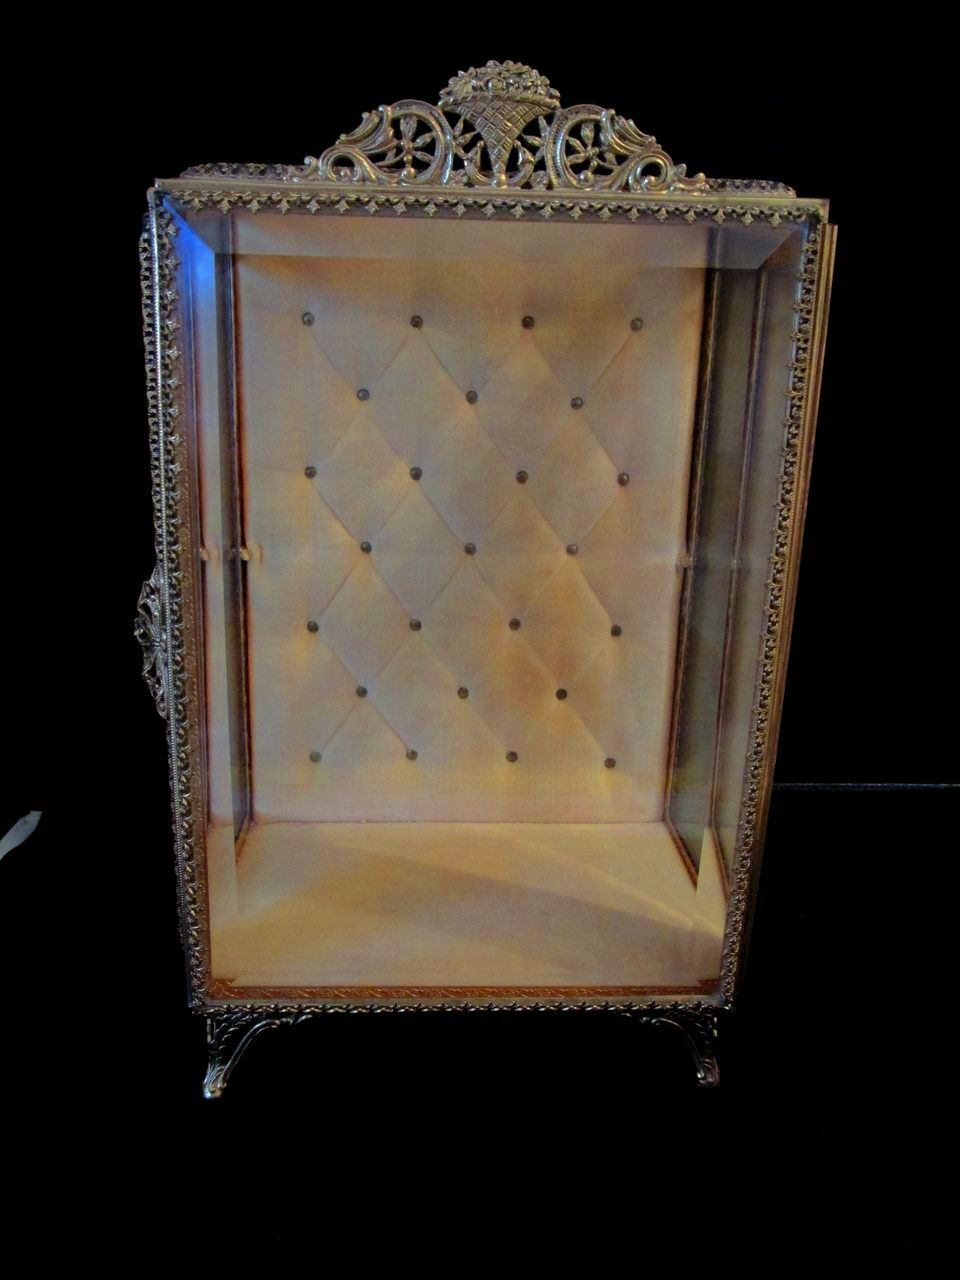 Vintage Beveled Glass Display Casket Jewelry or Doll Box